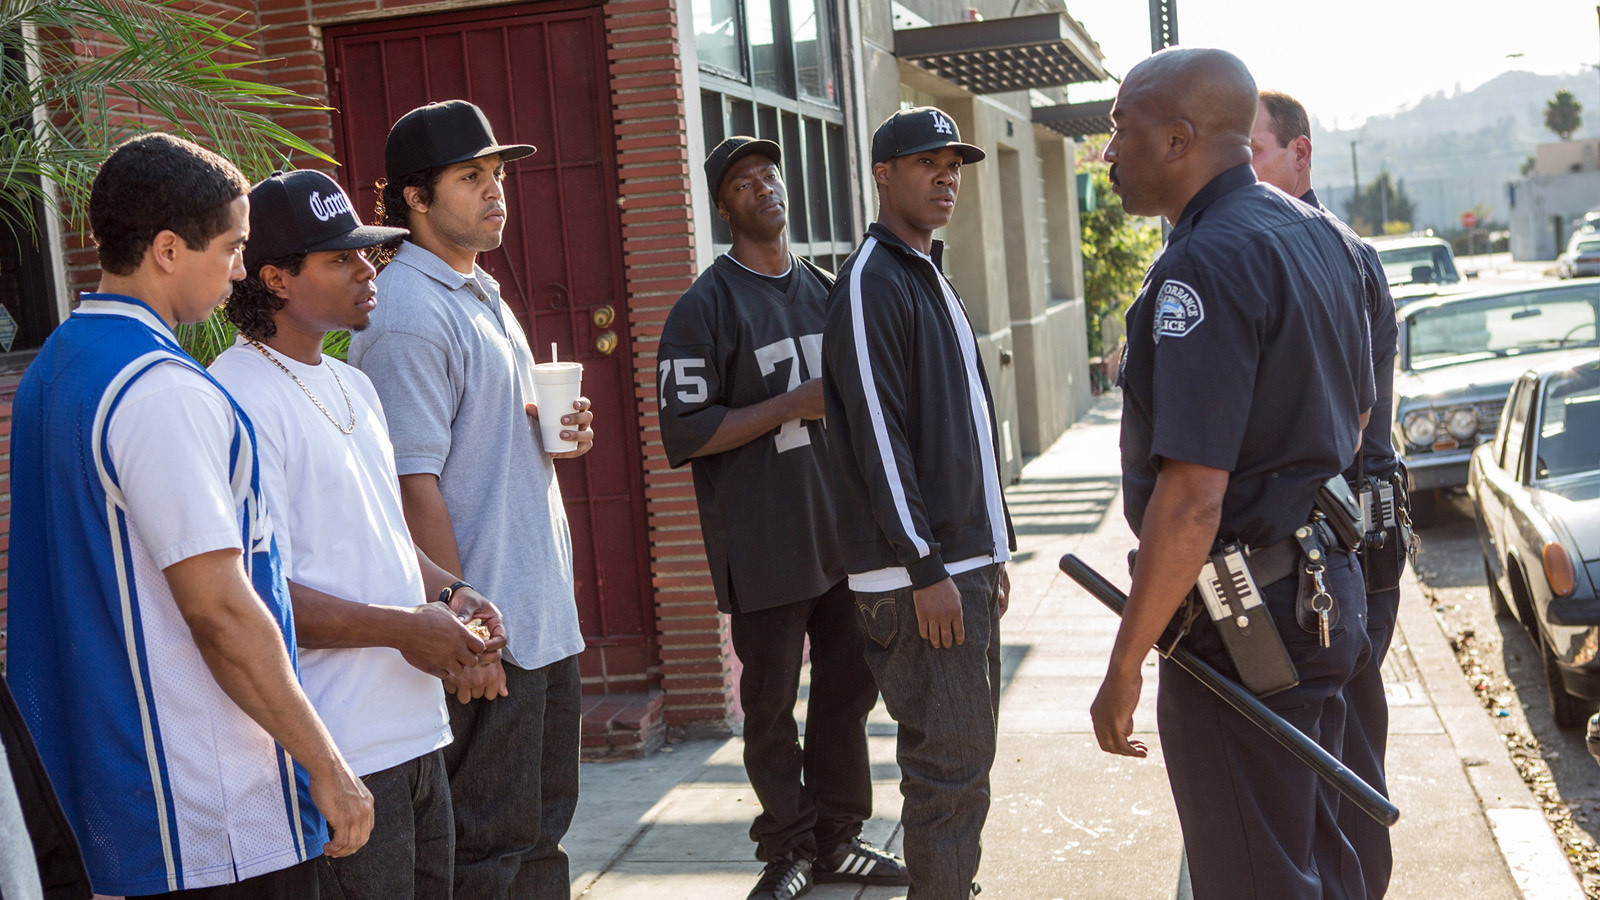 'Straight Outta Compton': Four thoughts on its box office ...